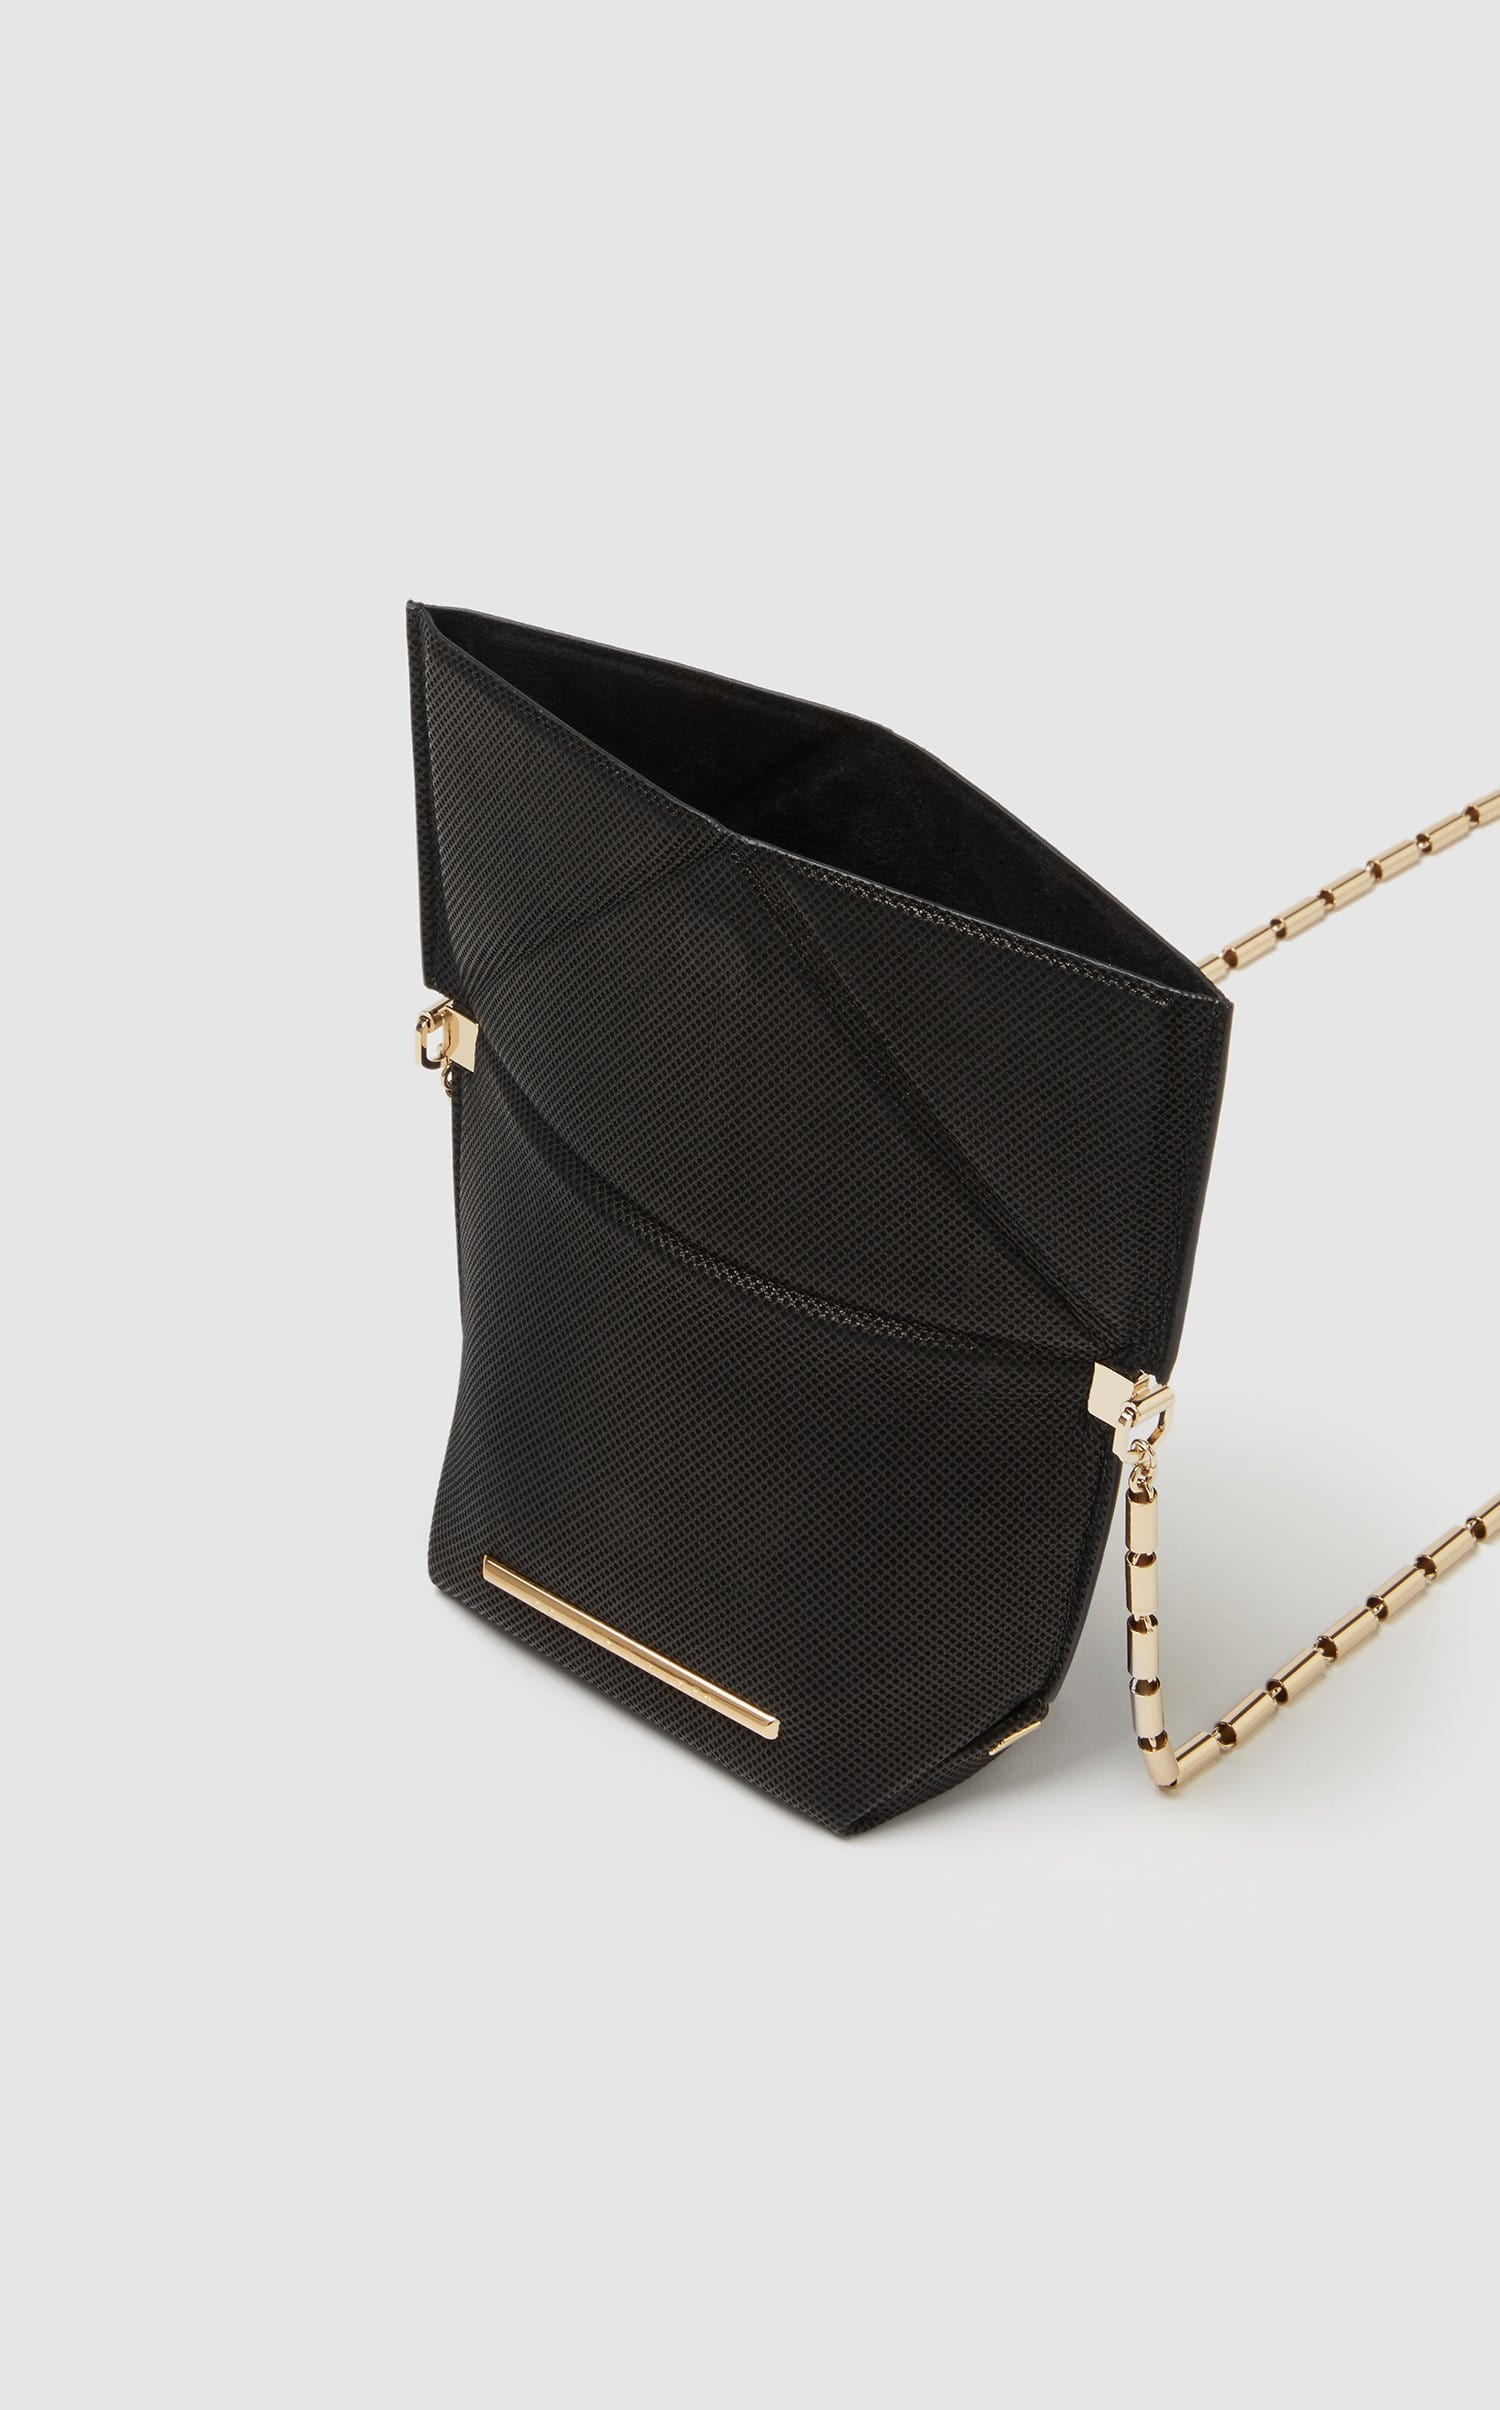 Mini Classico Bag In Black from Roland Mouret